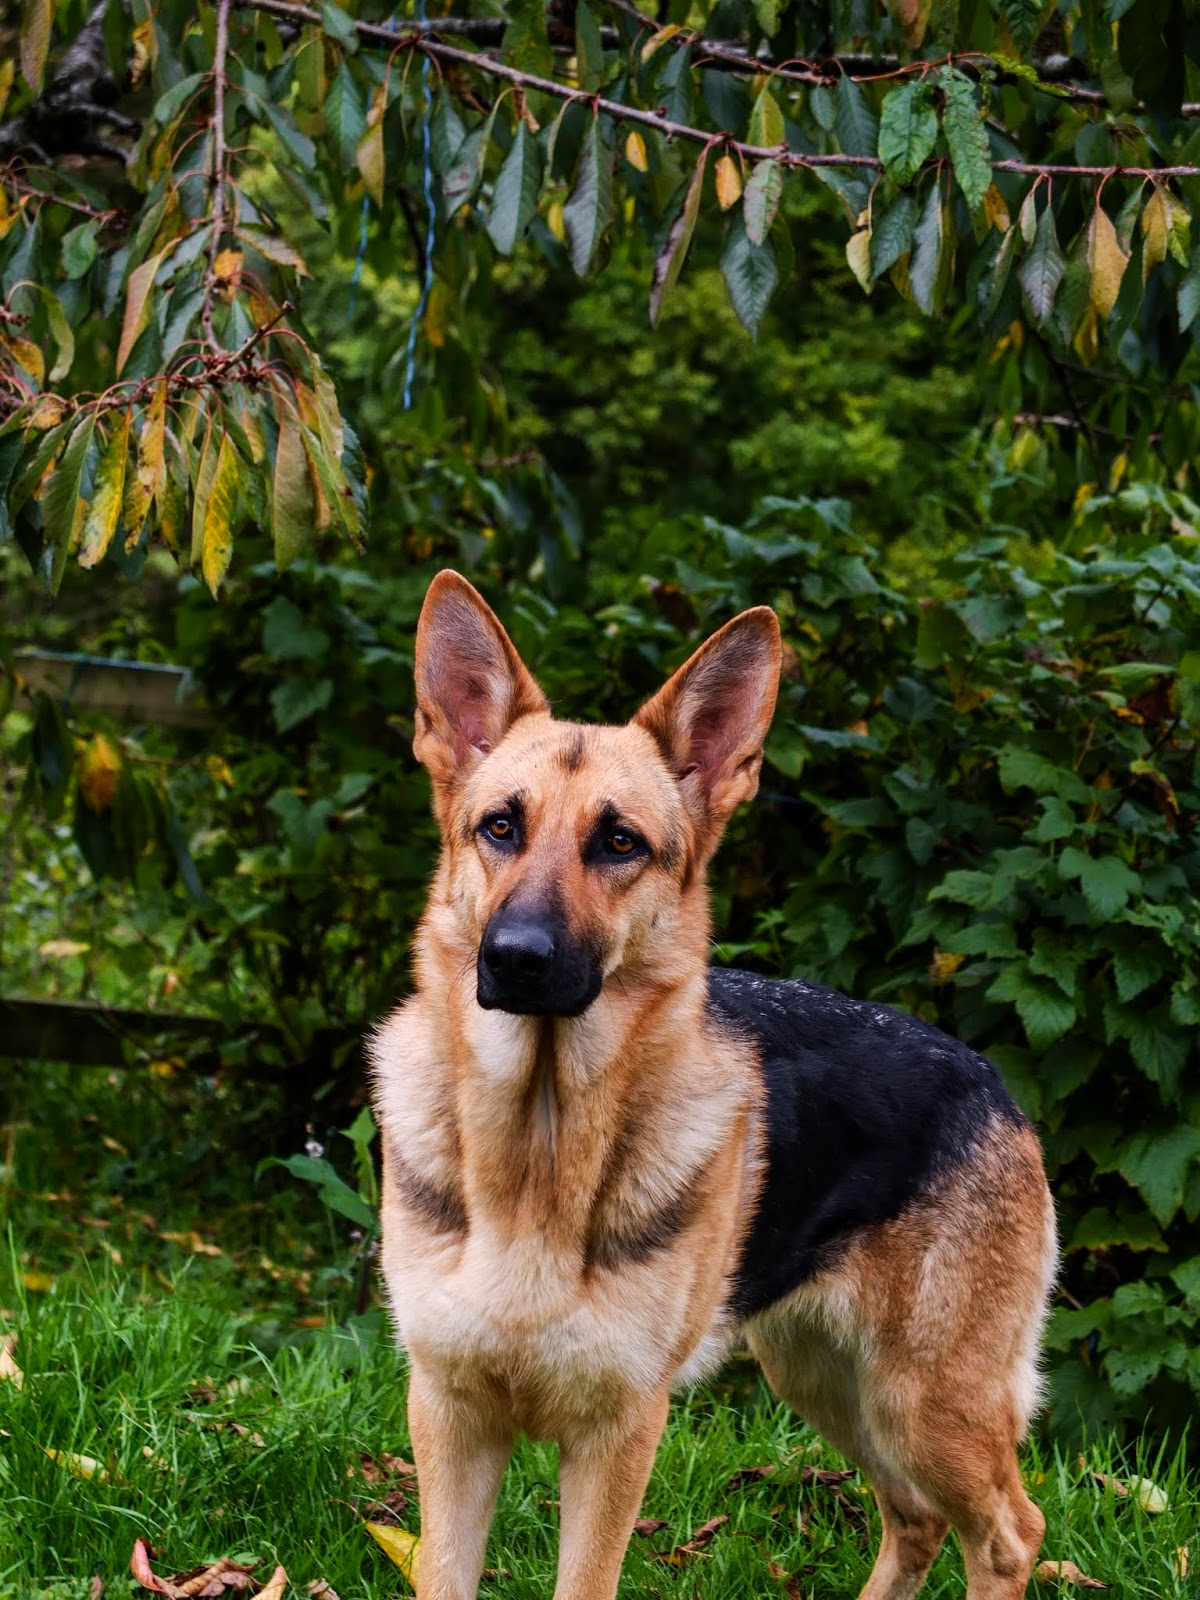 A 1 year and 9 month old German Shepherd Nala standing on grass under a cherry tree.